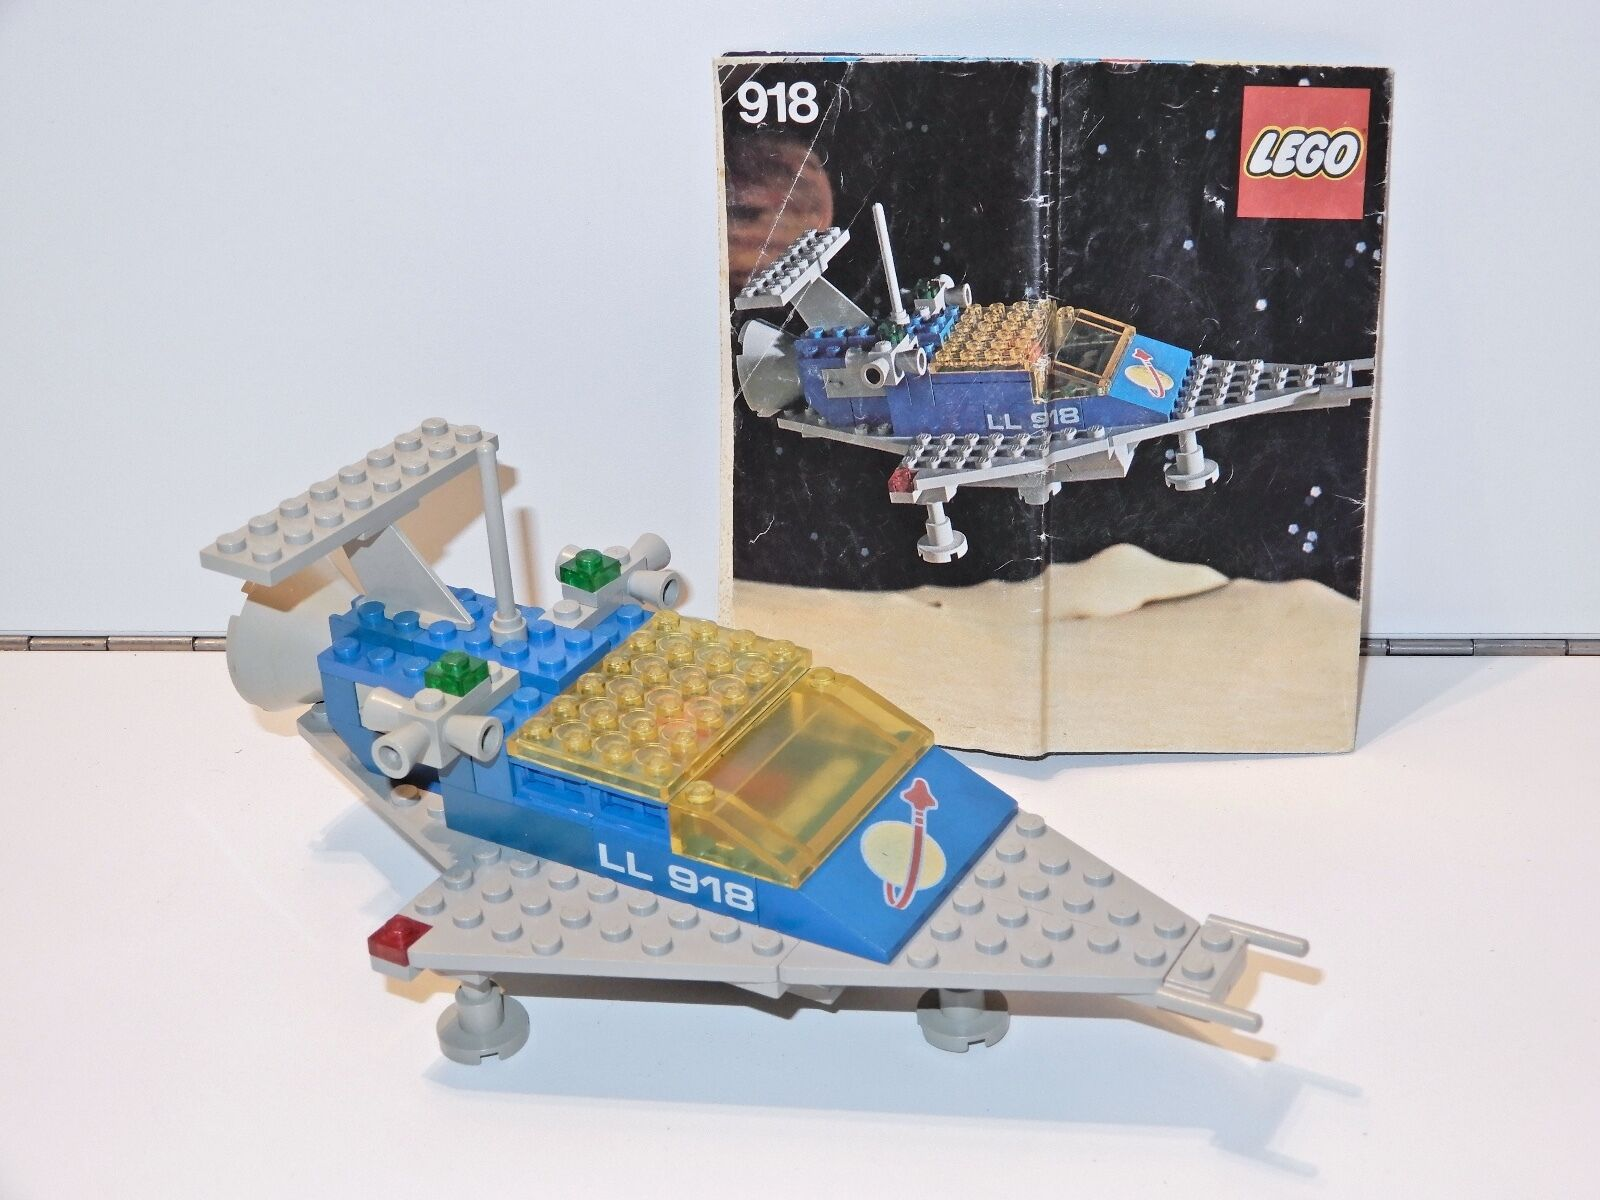 LEGO SPACE SPACE SPACE No 918 ONE MAN SPACE TRANSPORT 100% COMPLETE + INSTRUCTIONS - 1980s c81346